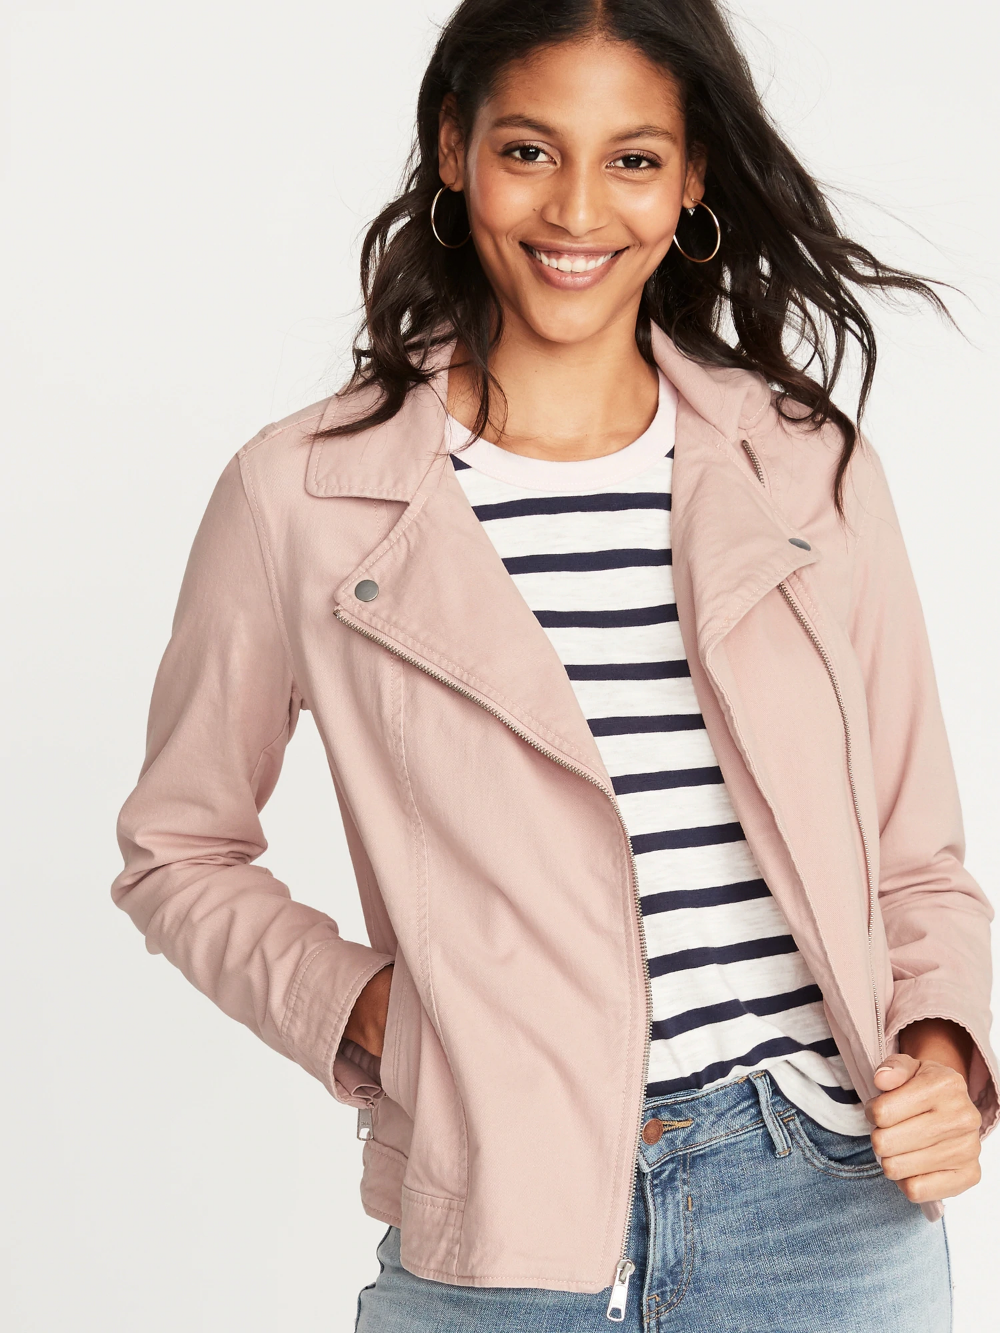 Twill Moto Jacket for Women Old Navy Jackets for women